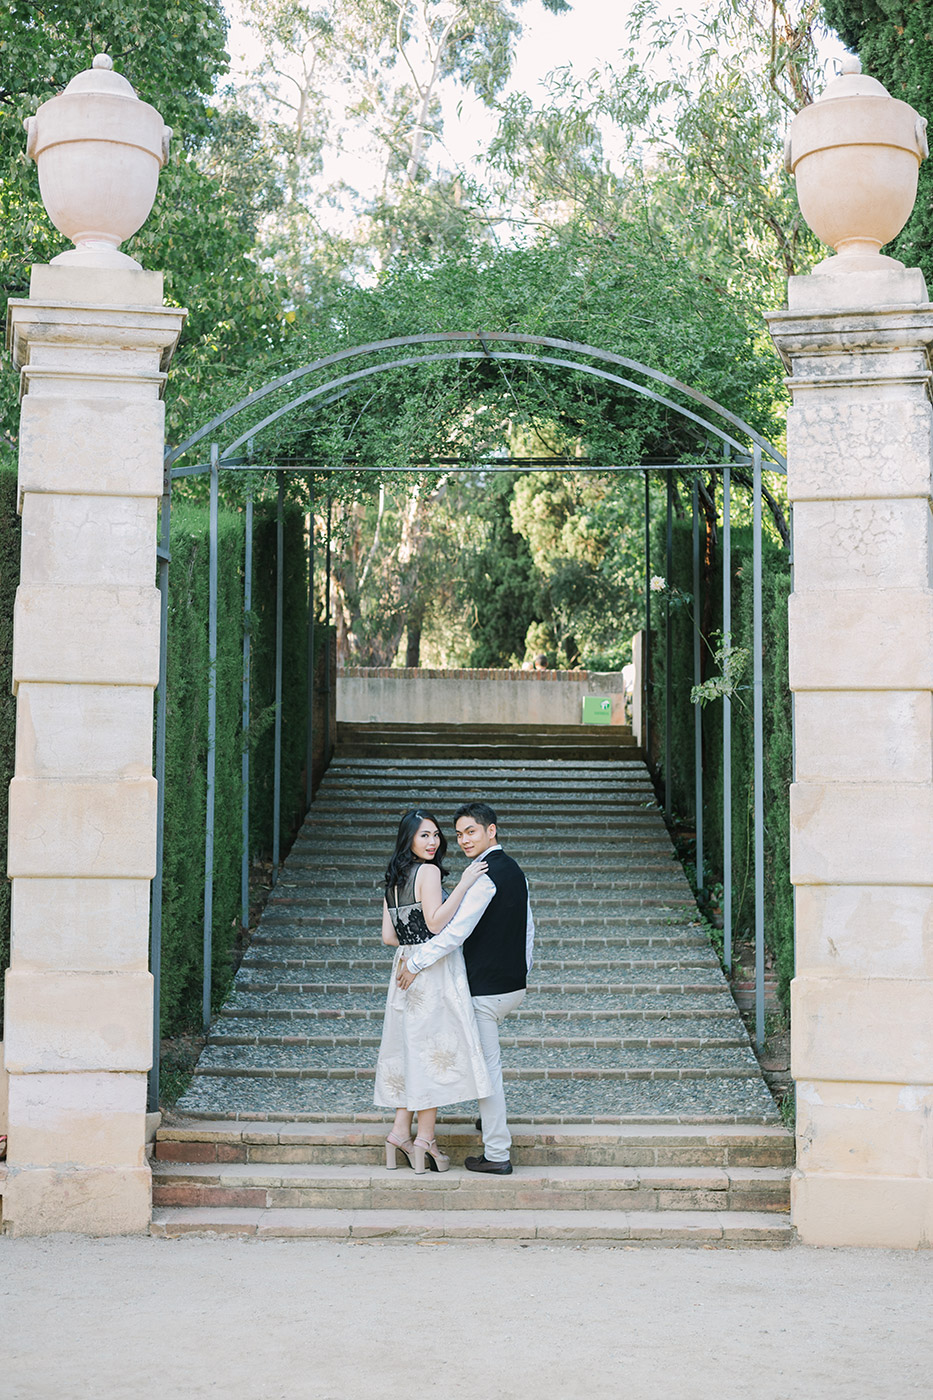 Classic and elegant engagement at Labyrinth Park | Elegant pre wedding photoshoot Barcelona |Engagement photographer Barcelona | Fine Art Photography